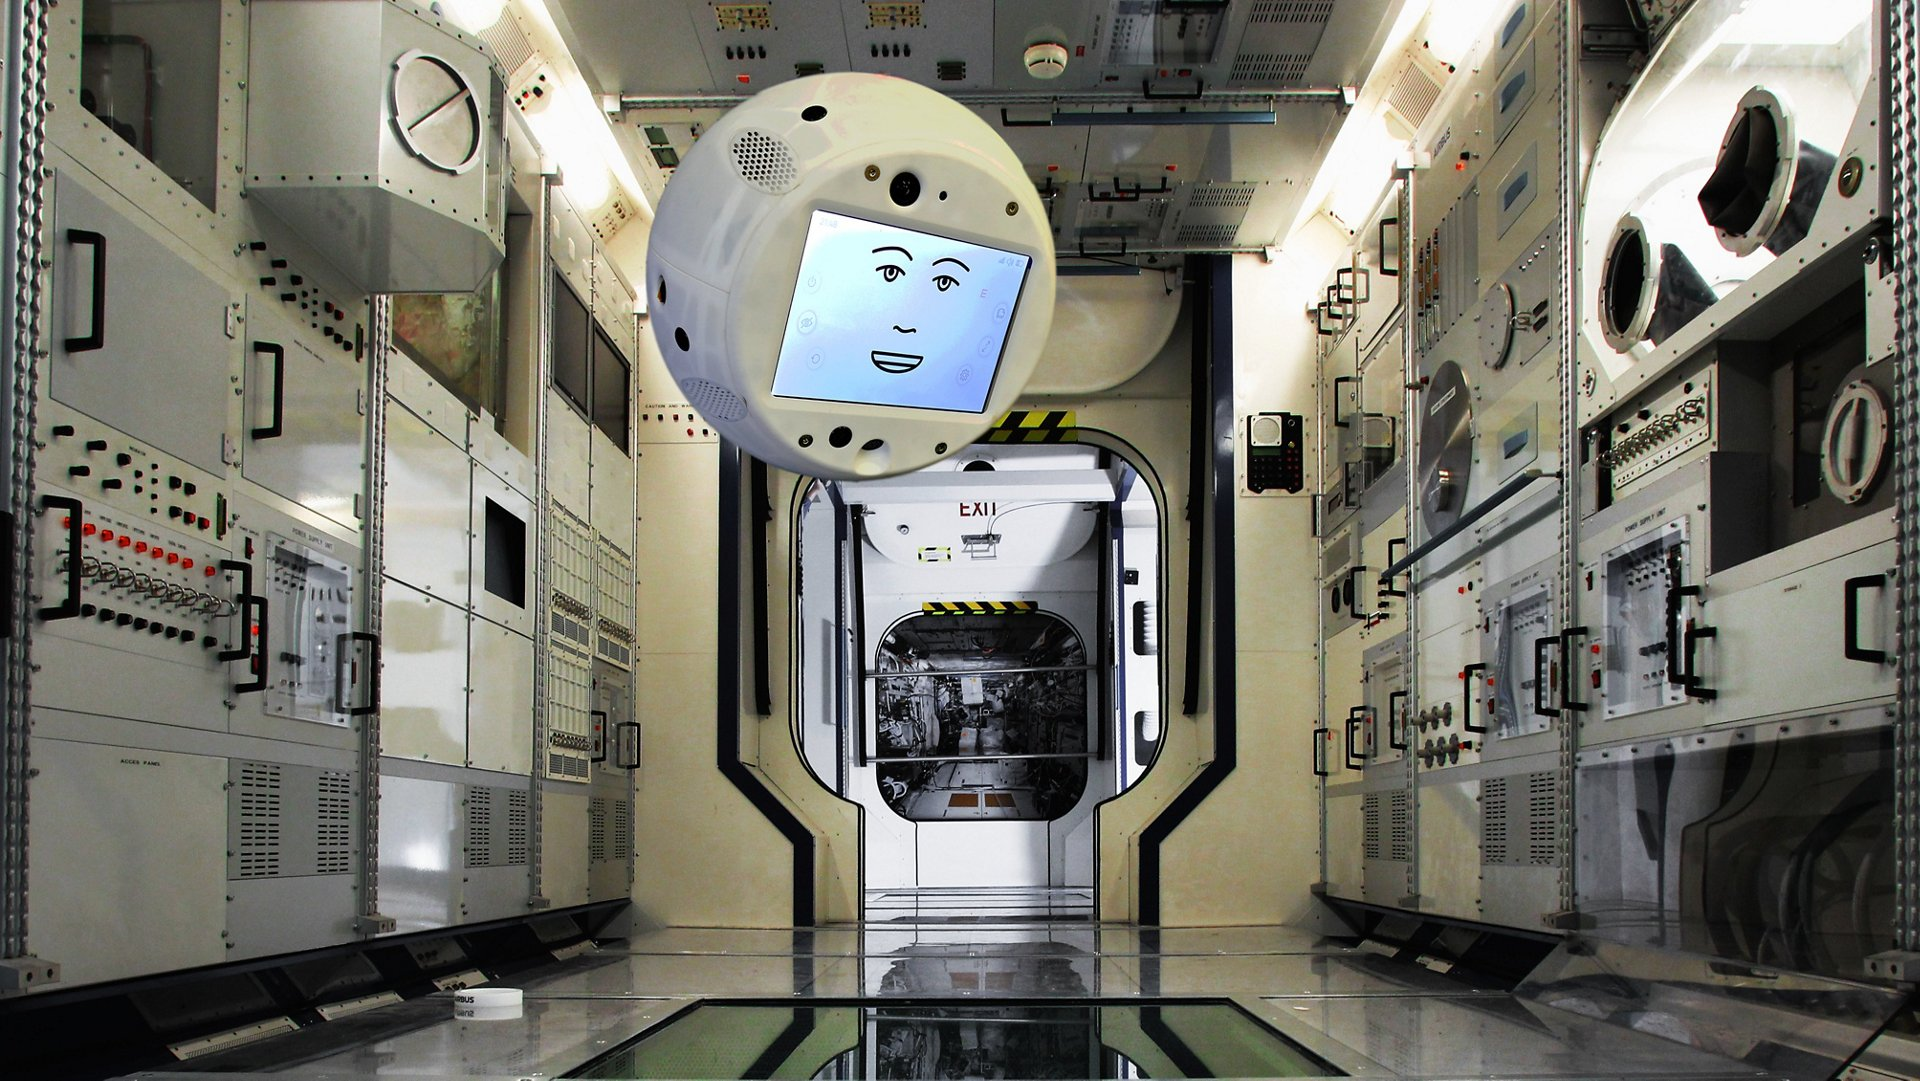 CIMON - the first AI crew assistant for spaceflight crews (Airbus/NASA)